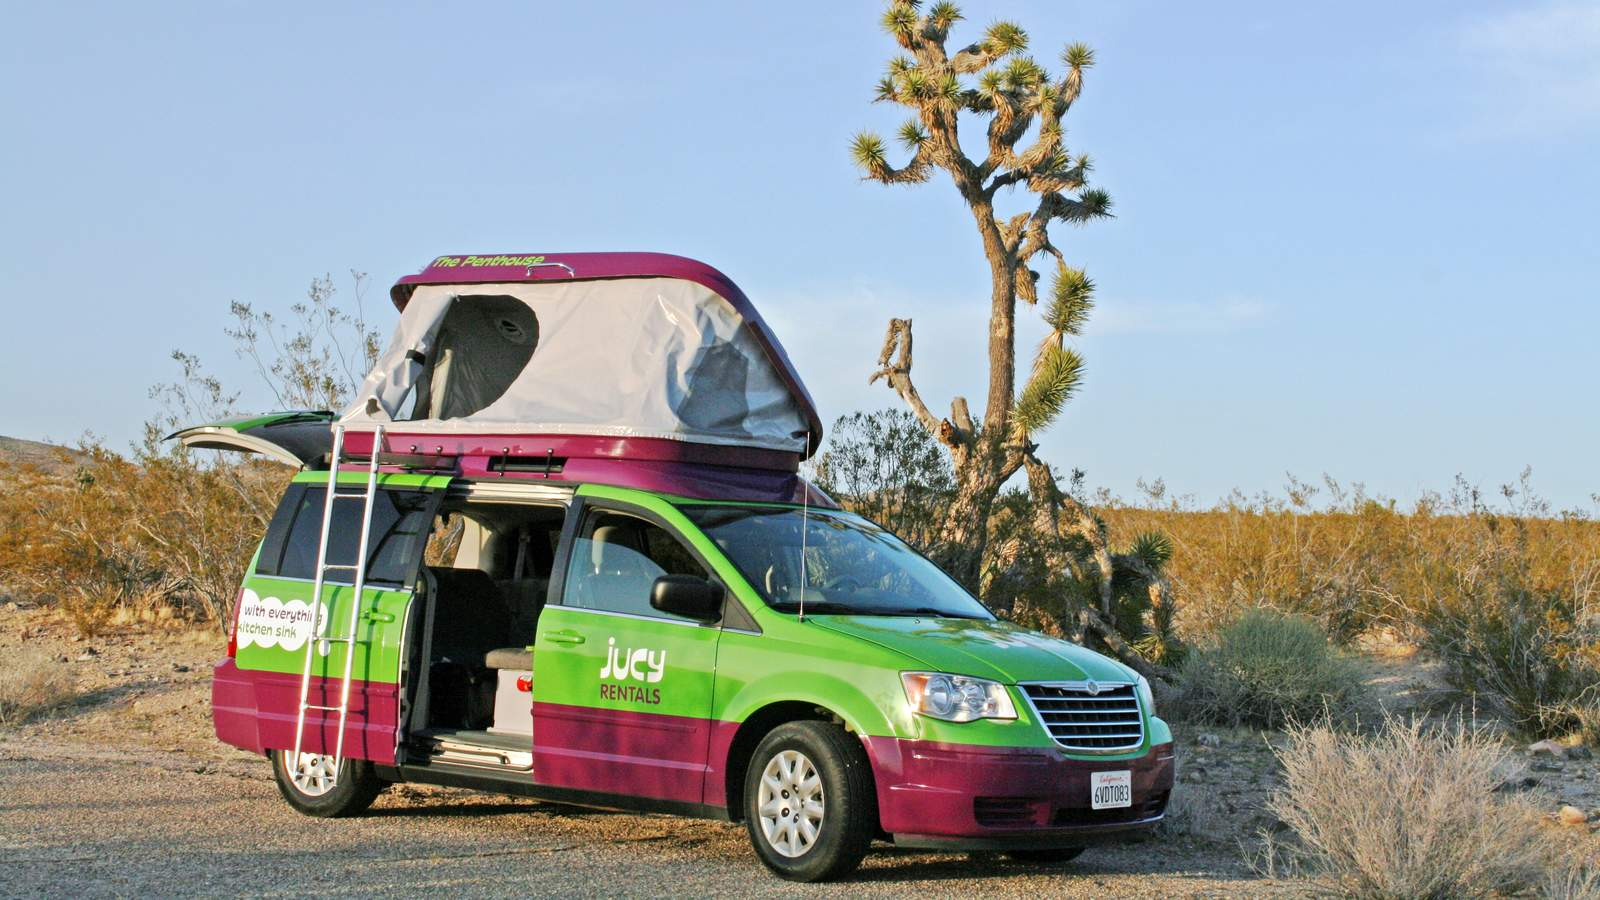 JUCY Champ Im Joshua Tree National Park